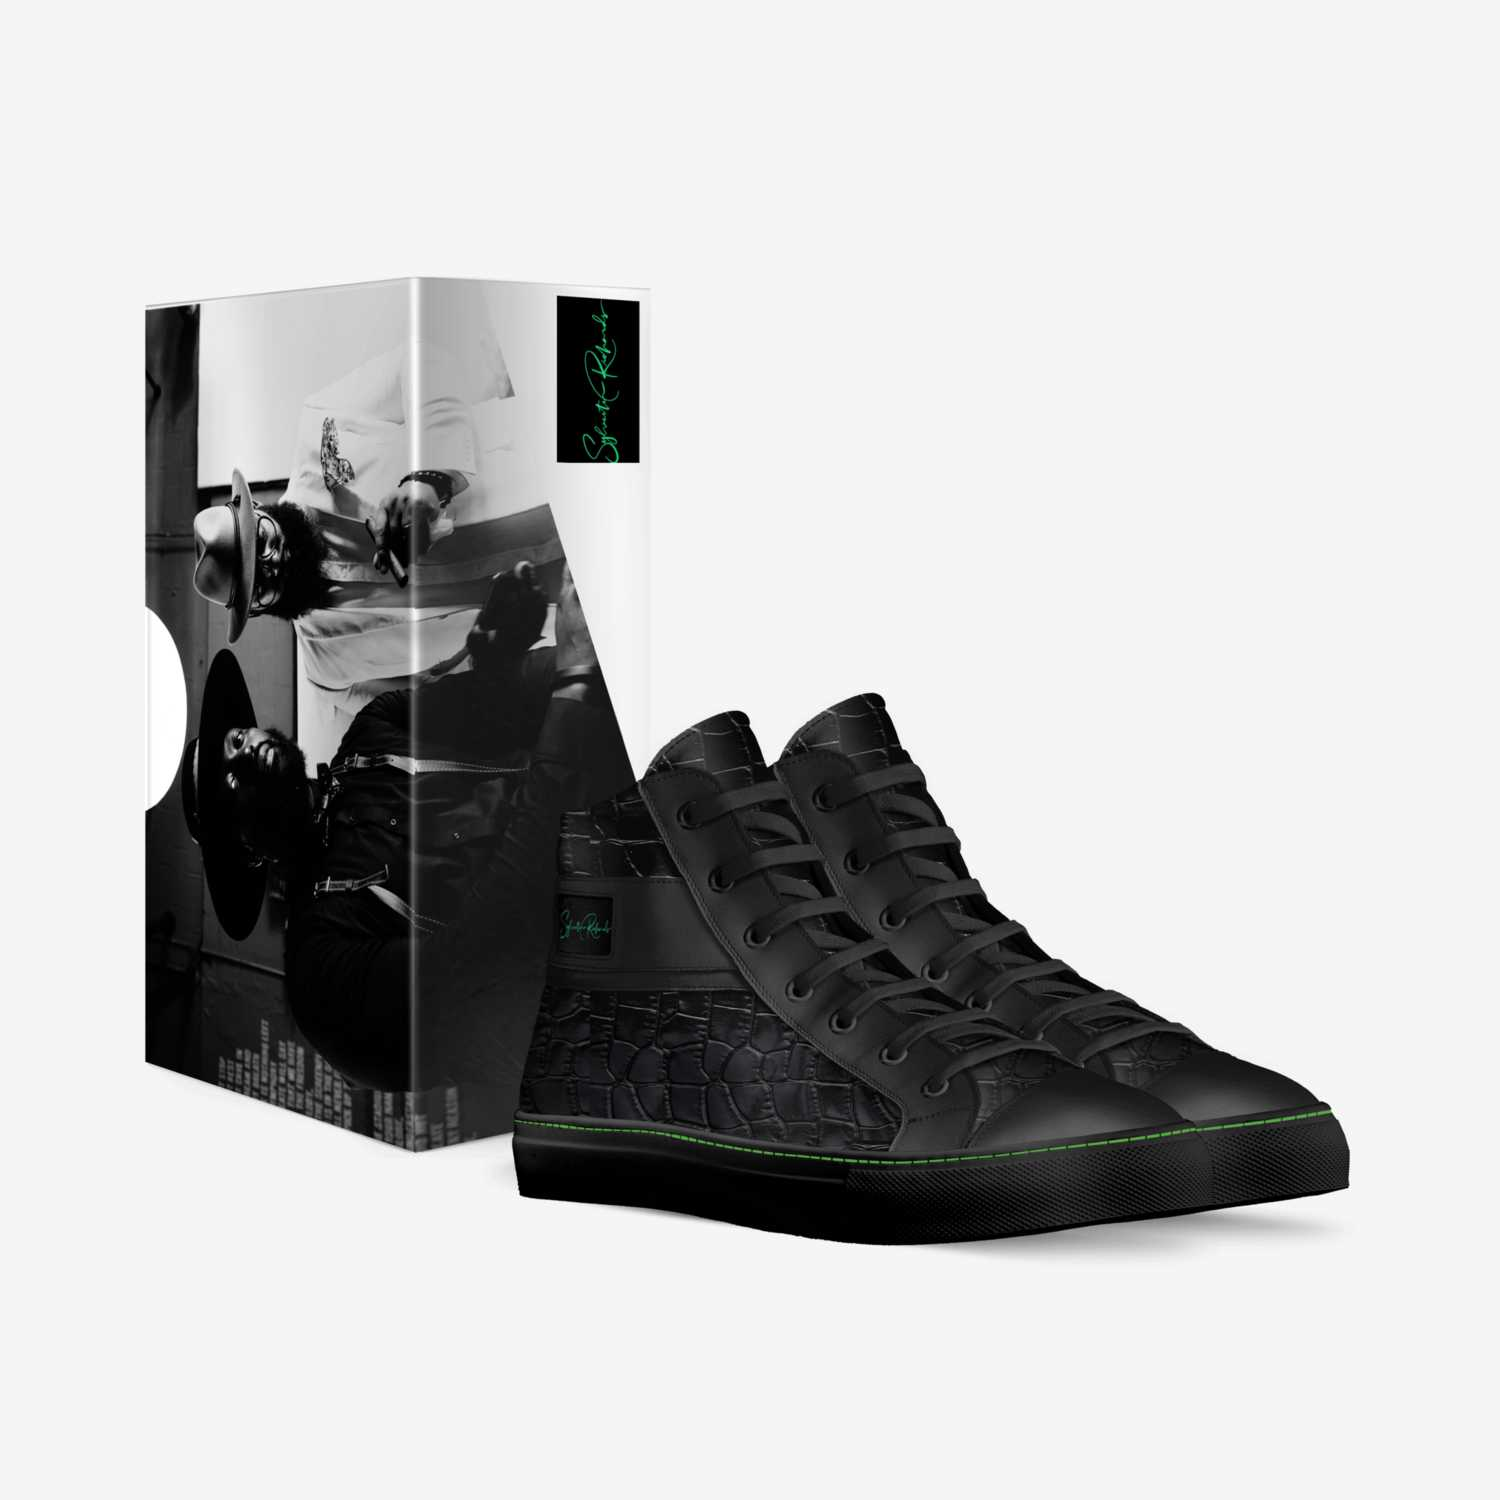 Sylvester Richards custom made in Italy shoes by Byron Johnson   Box view